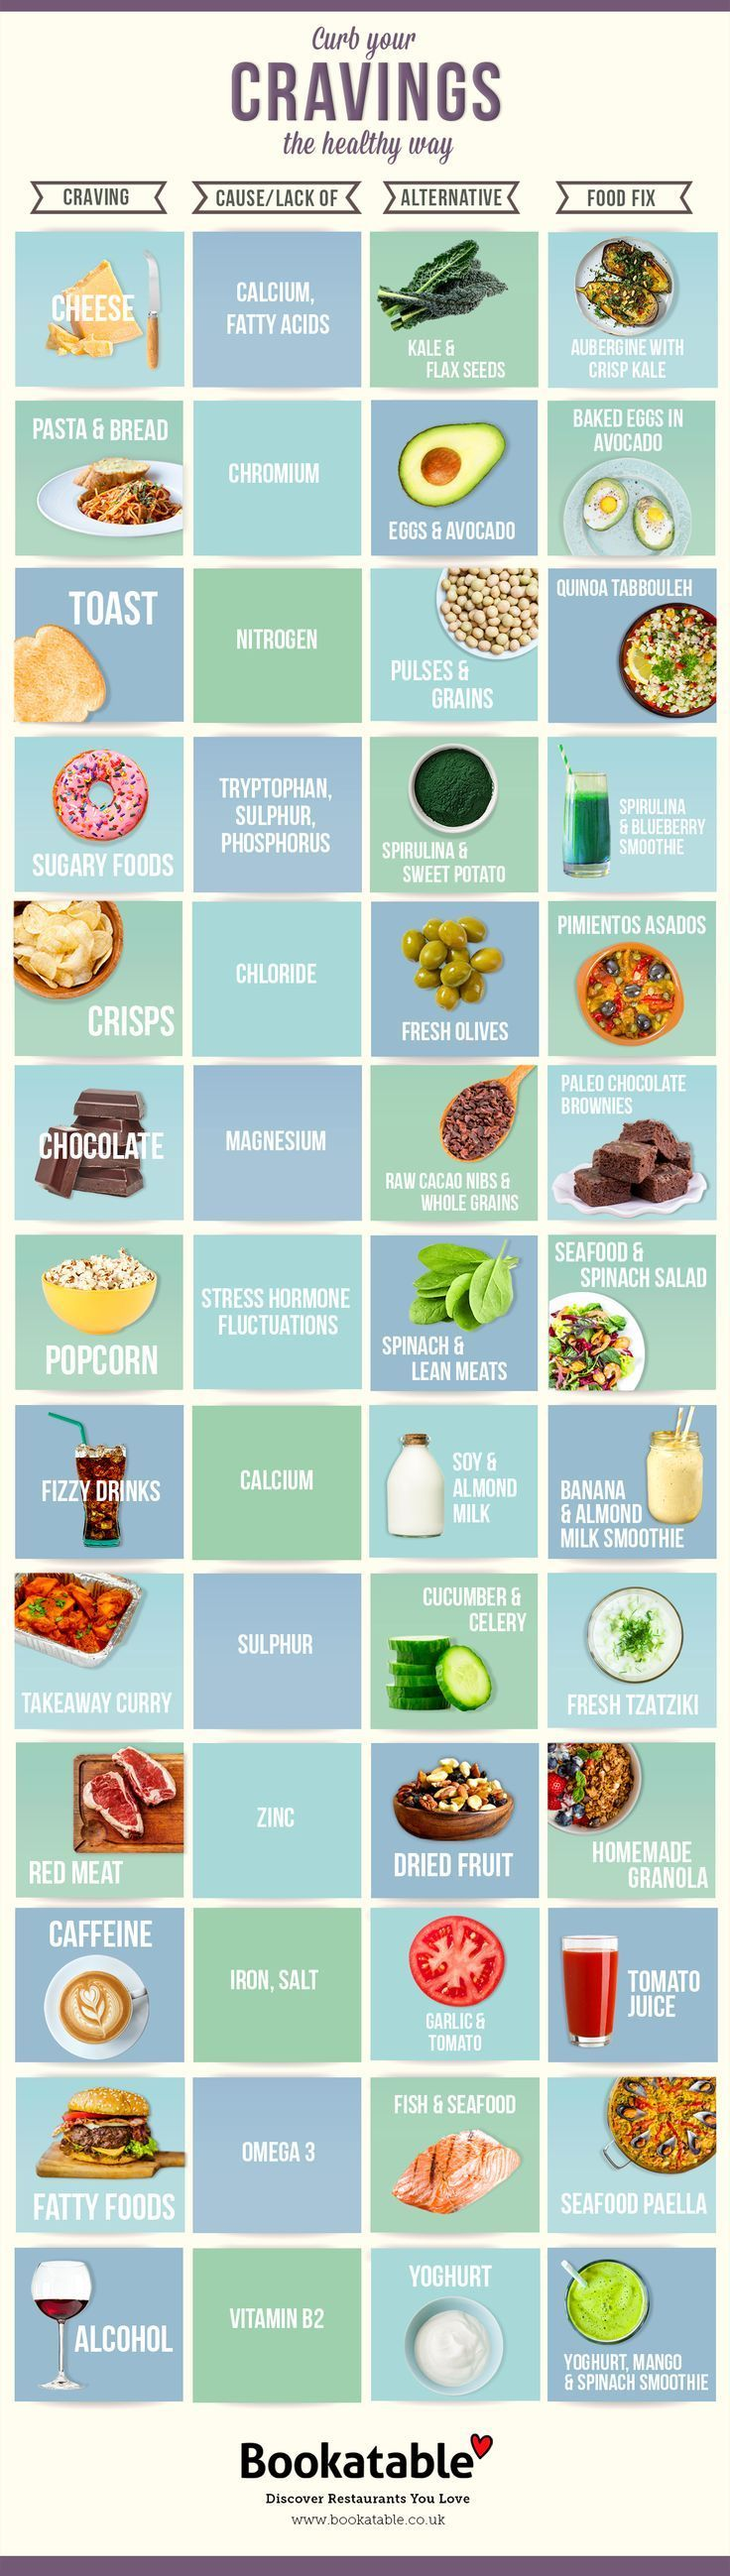 The best diet to lose weight fast and keep it off image 7